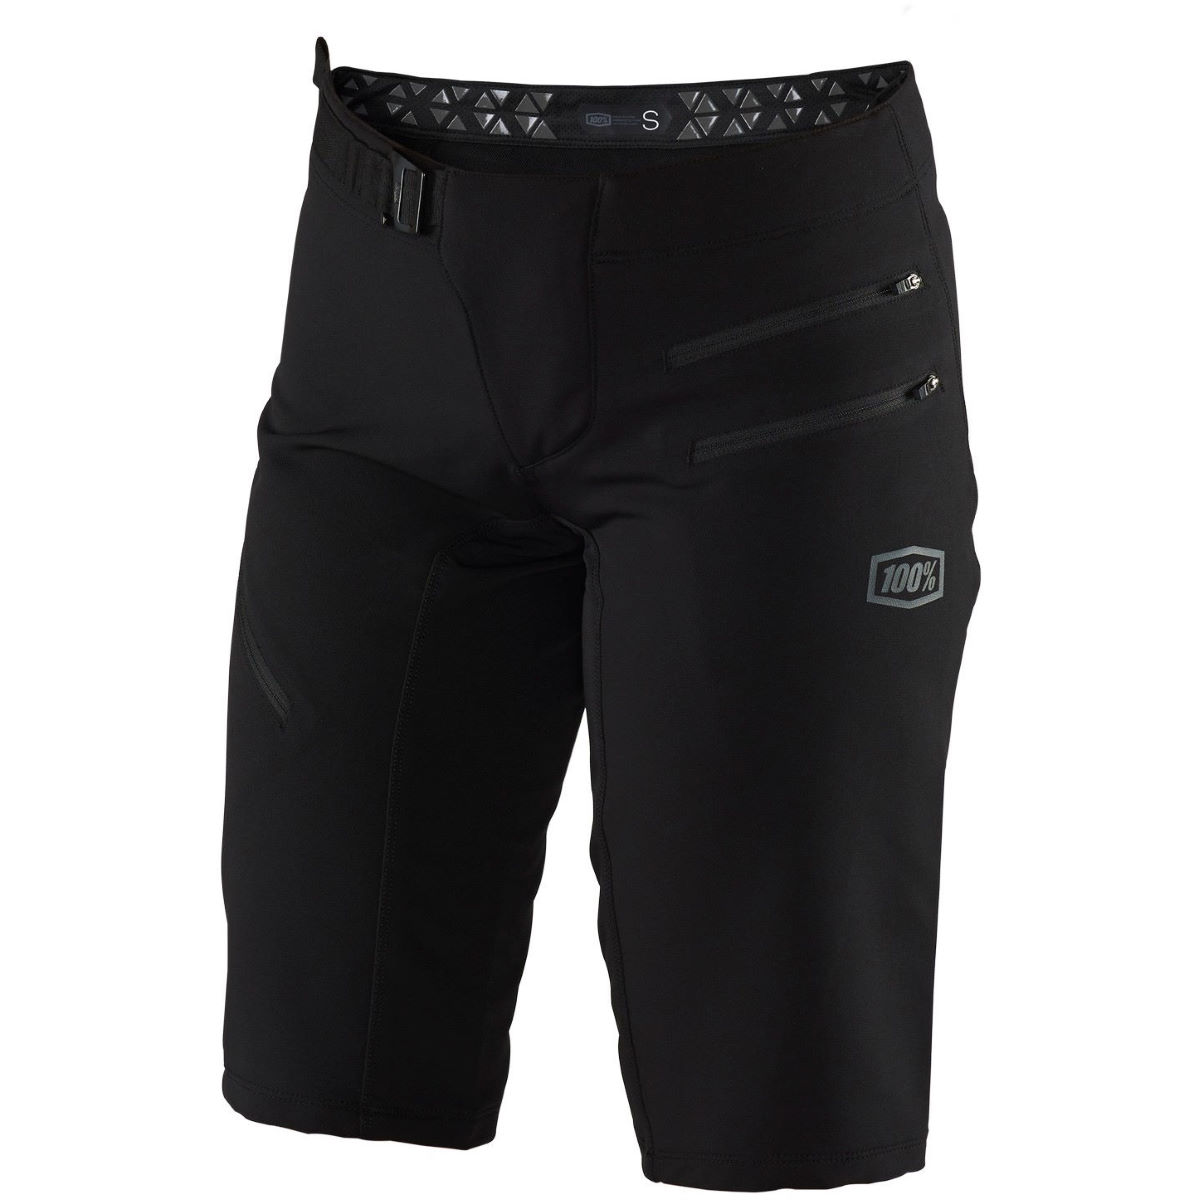 100% Womens Airmatic Shorts - M Black  Baggy Shorts